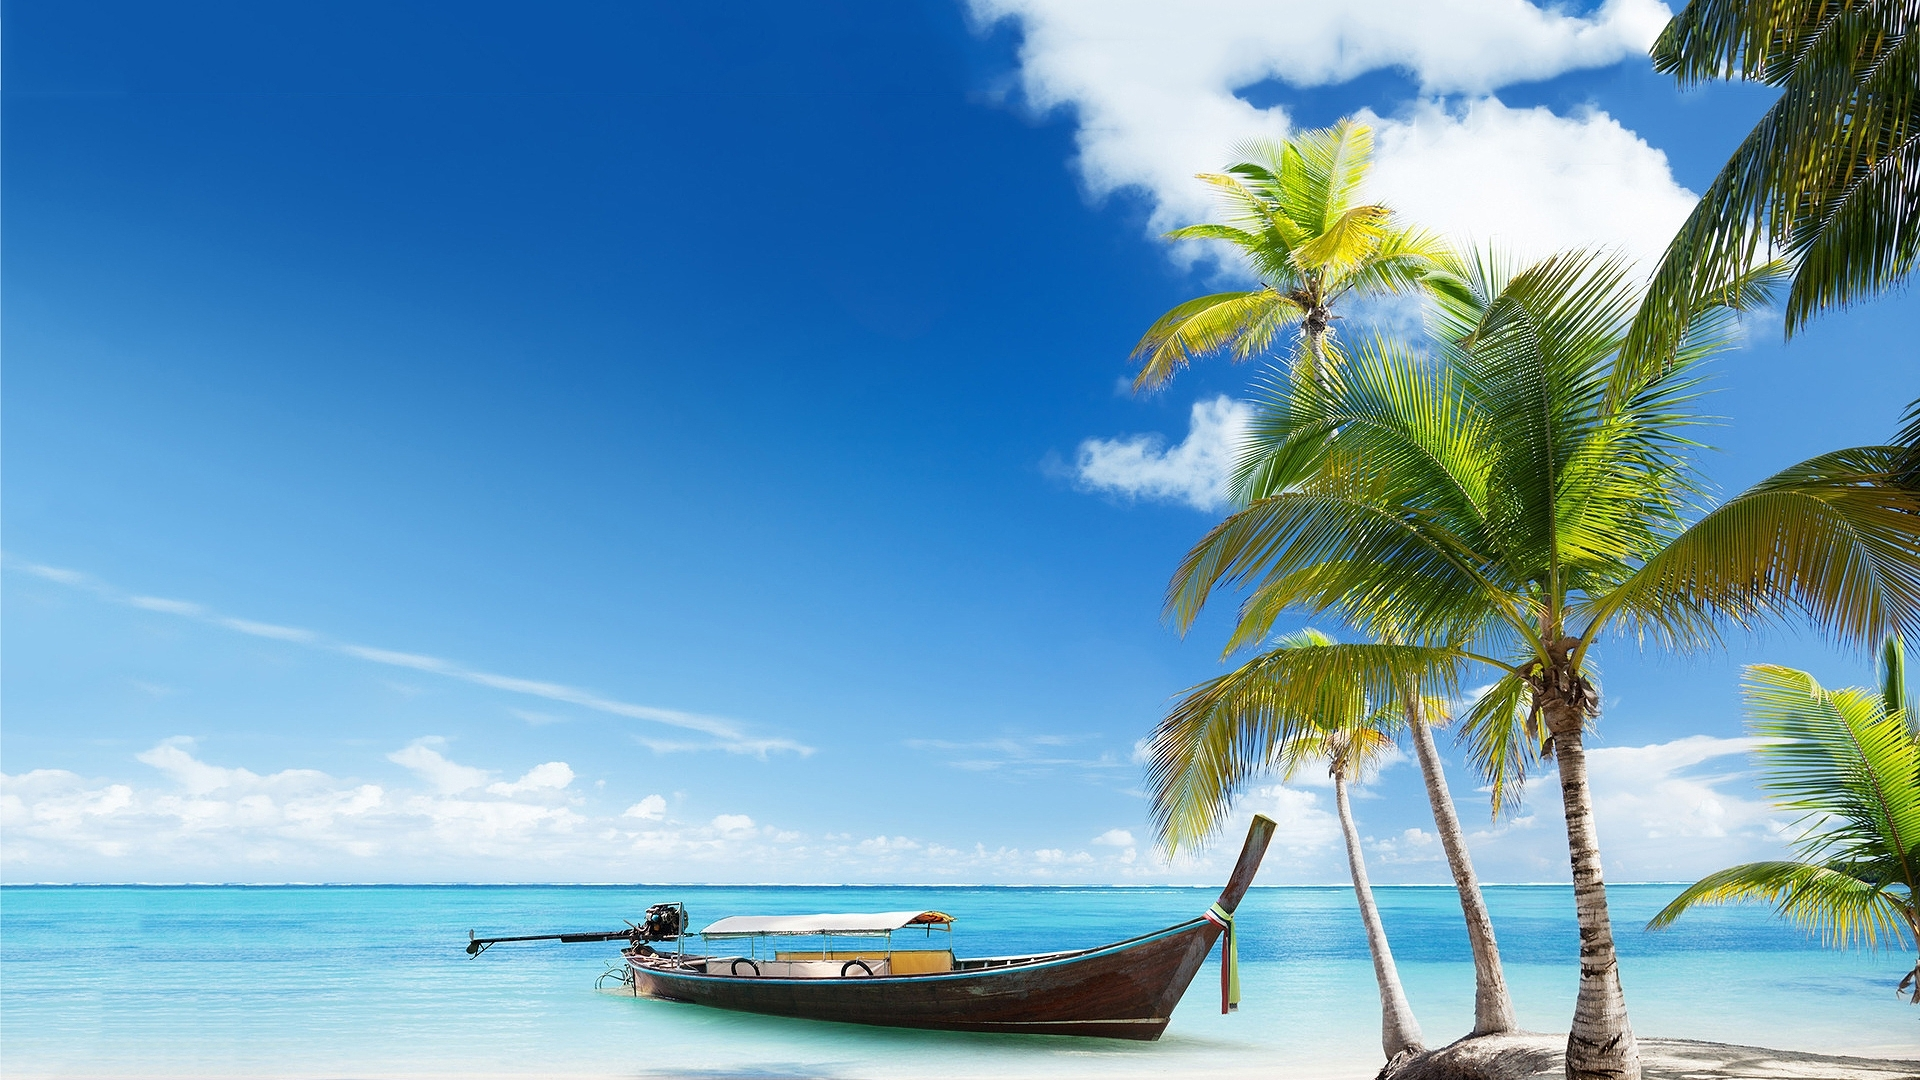 paradise island wallpaper in Nature wallpapers with all resolutions 1920x1080